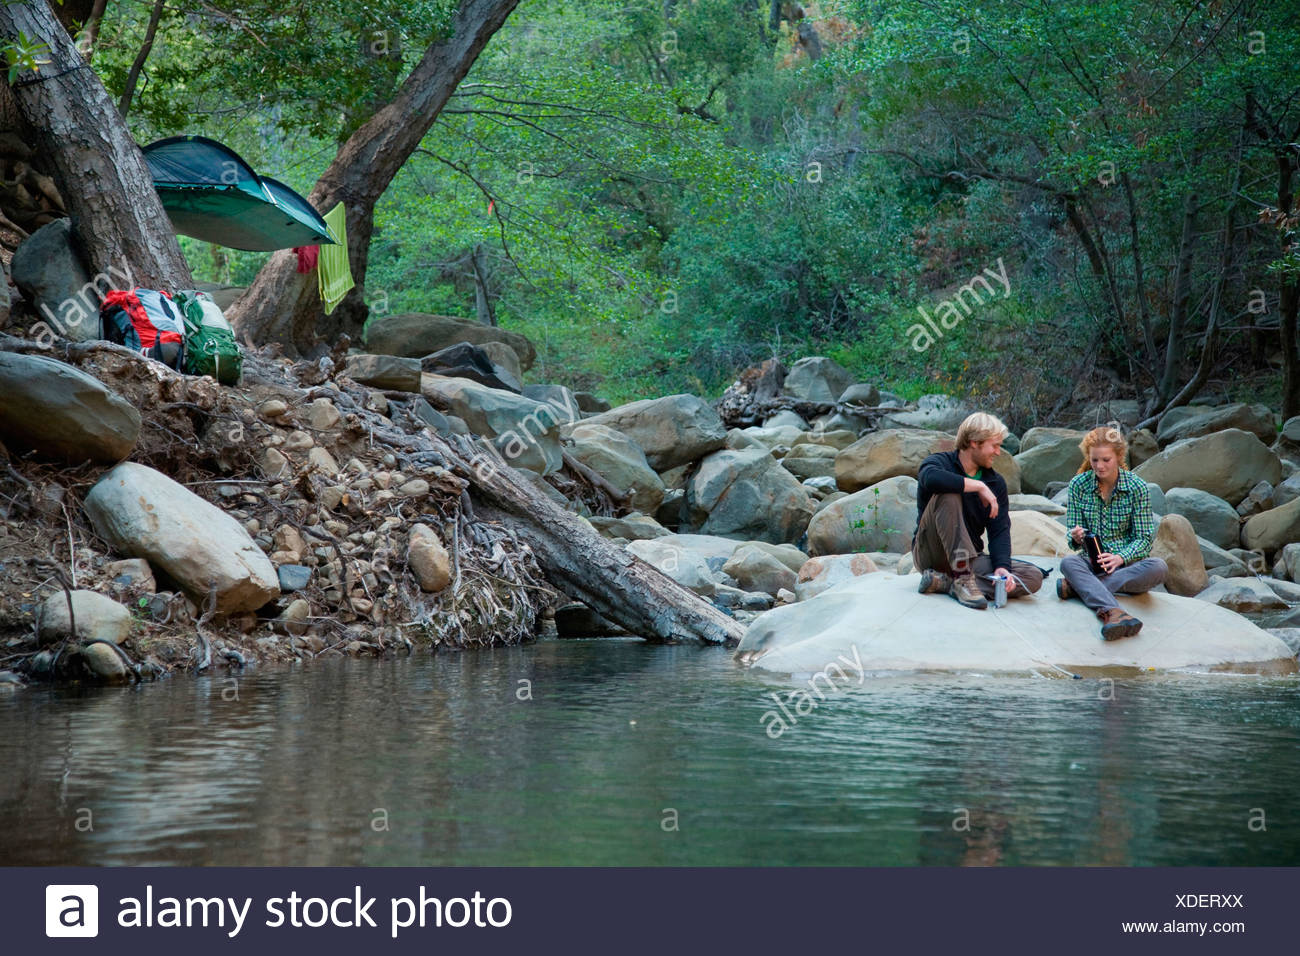 Backpackers taking a break at a river. - Stock Image